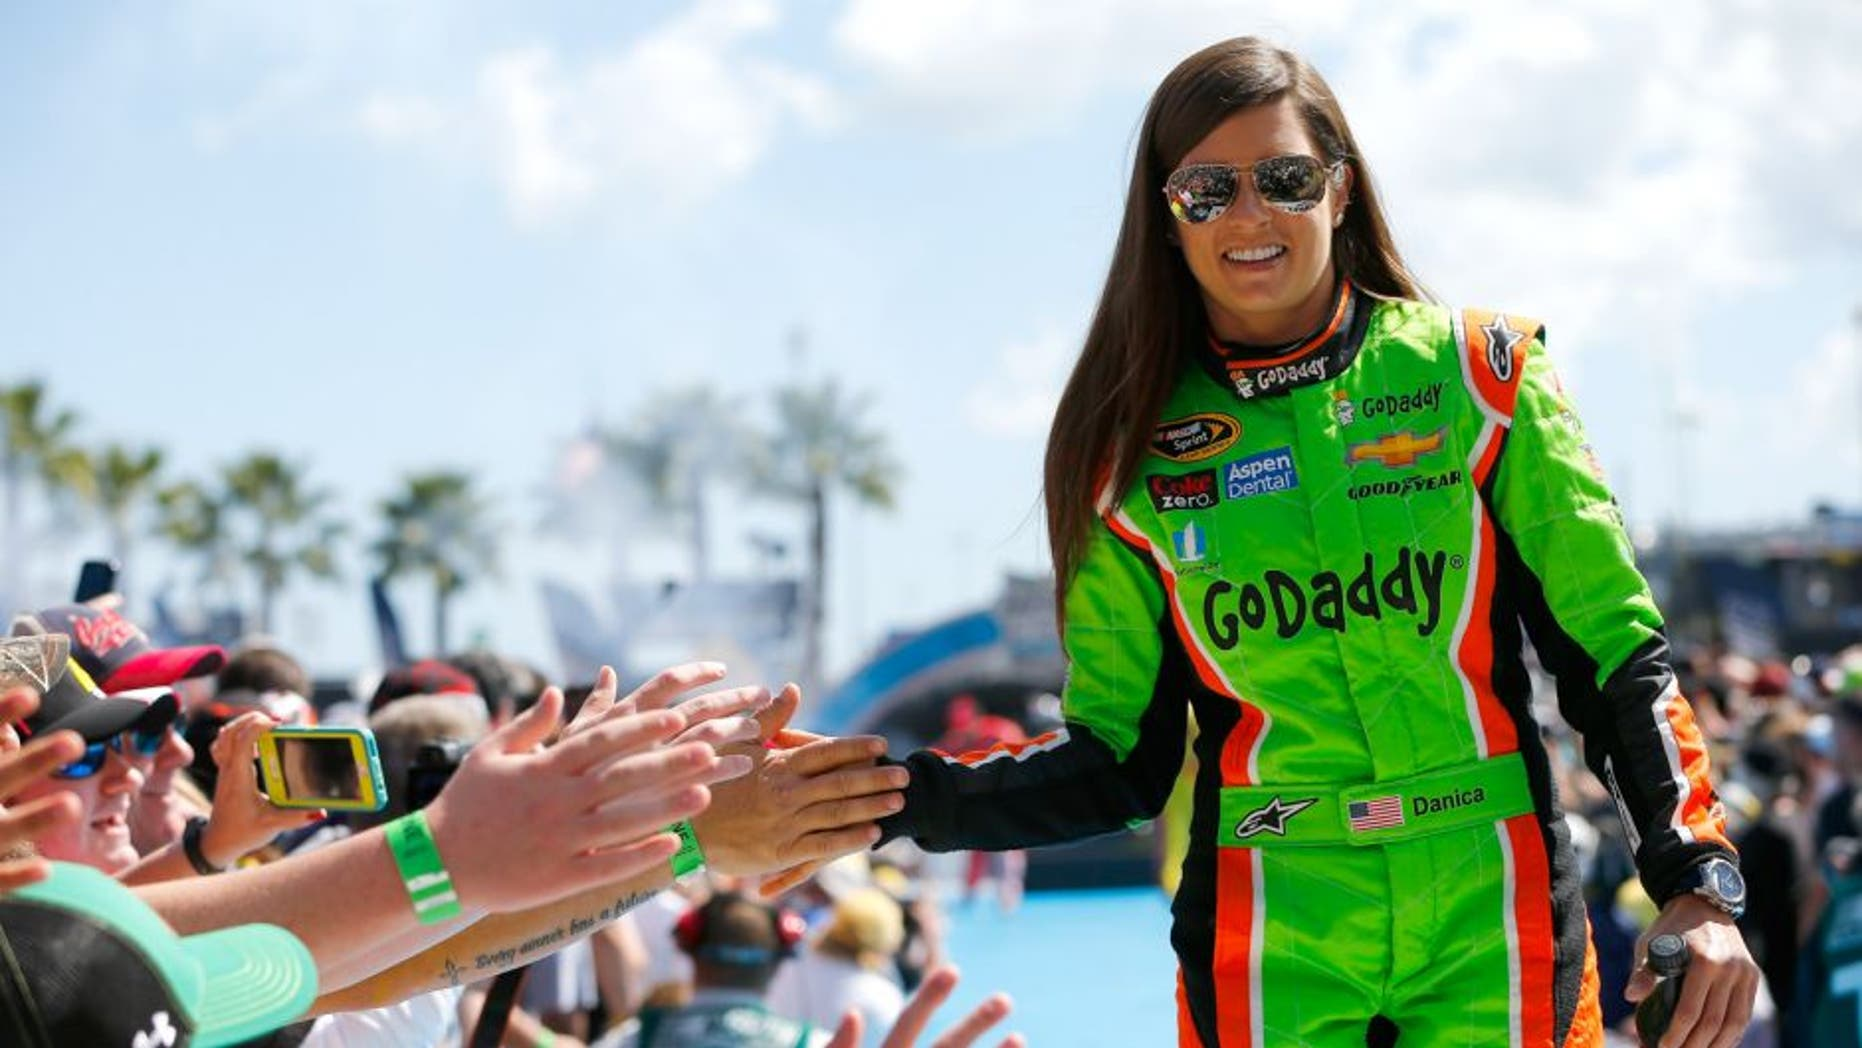 Danica Patrick, driver of the #10 GoDaddy Chevrolet, greets fans during the NASCAR Sprint Cup Series 57th Annual Daytona 500 at Daytona International Speedway on February 22, 2015 in Daytona Beach, Florida.